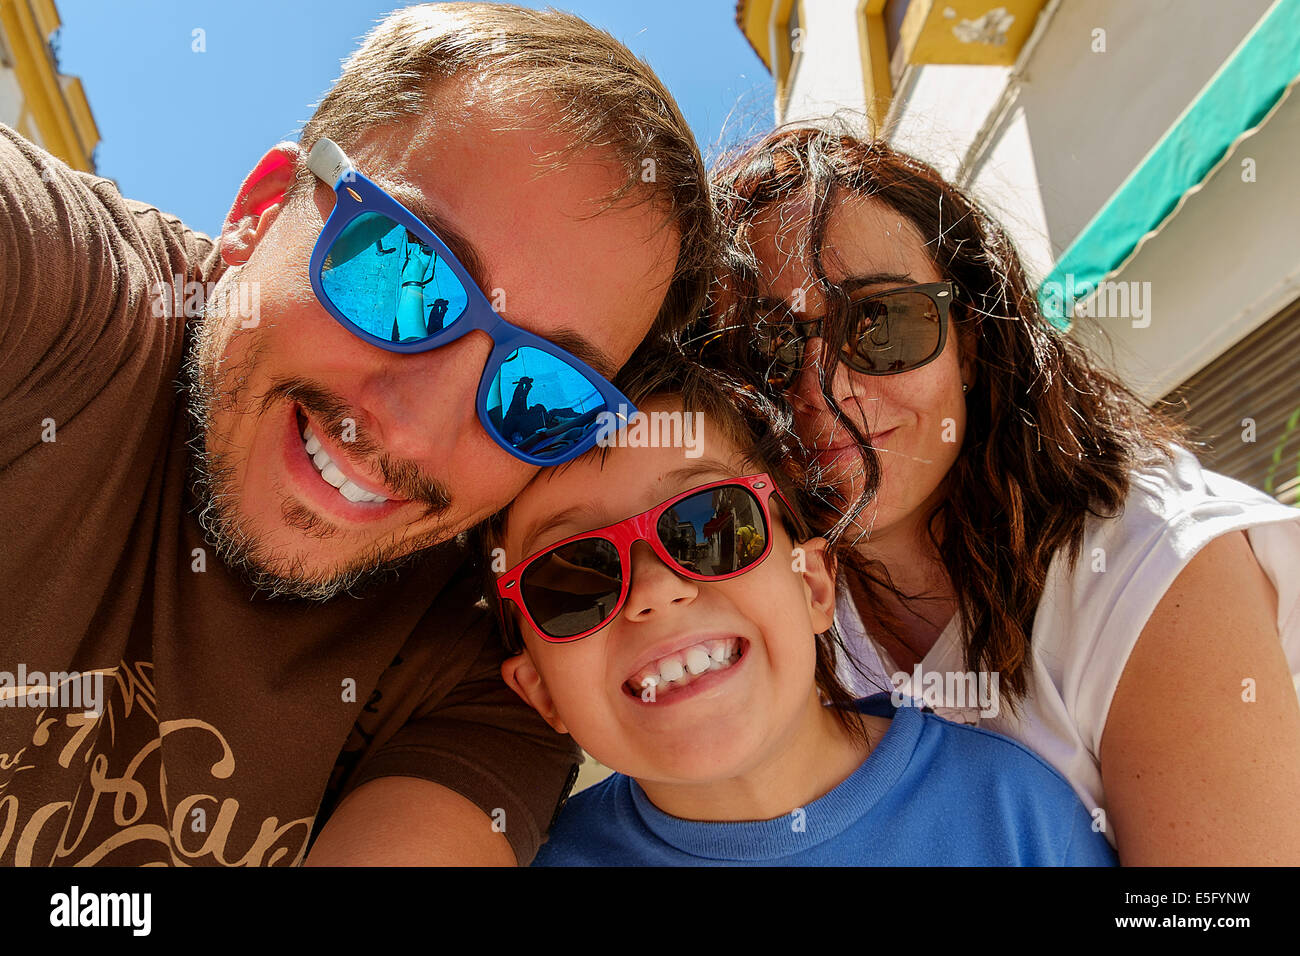 Family having fun wearing sunglasses & waving to a camera taking selfie photograph on summer holiday - Stock Image